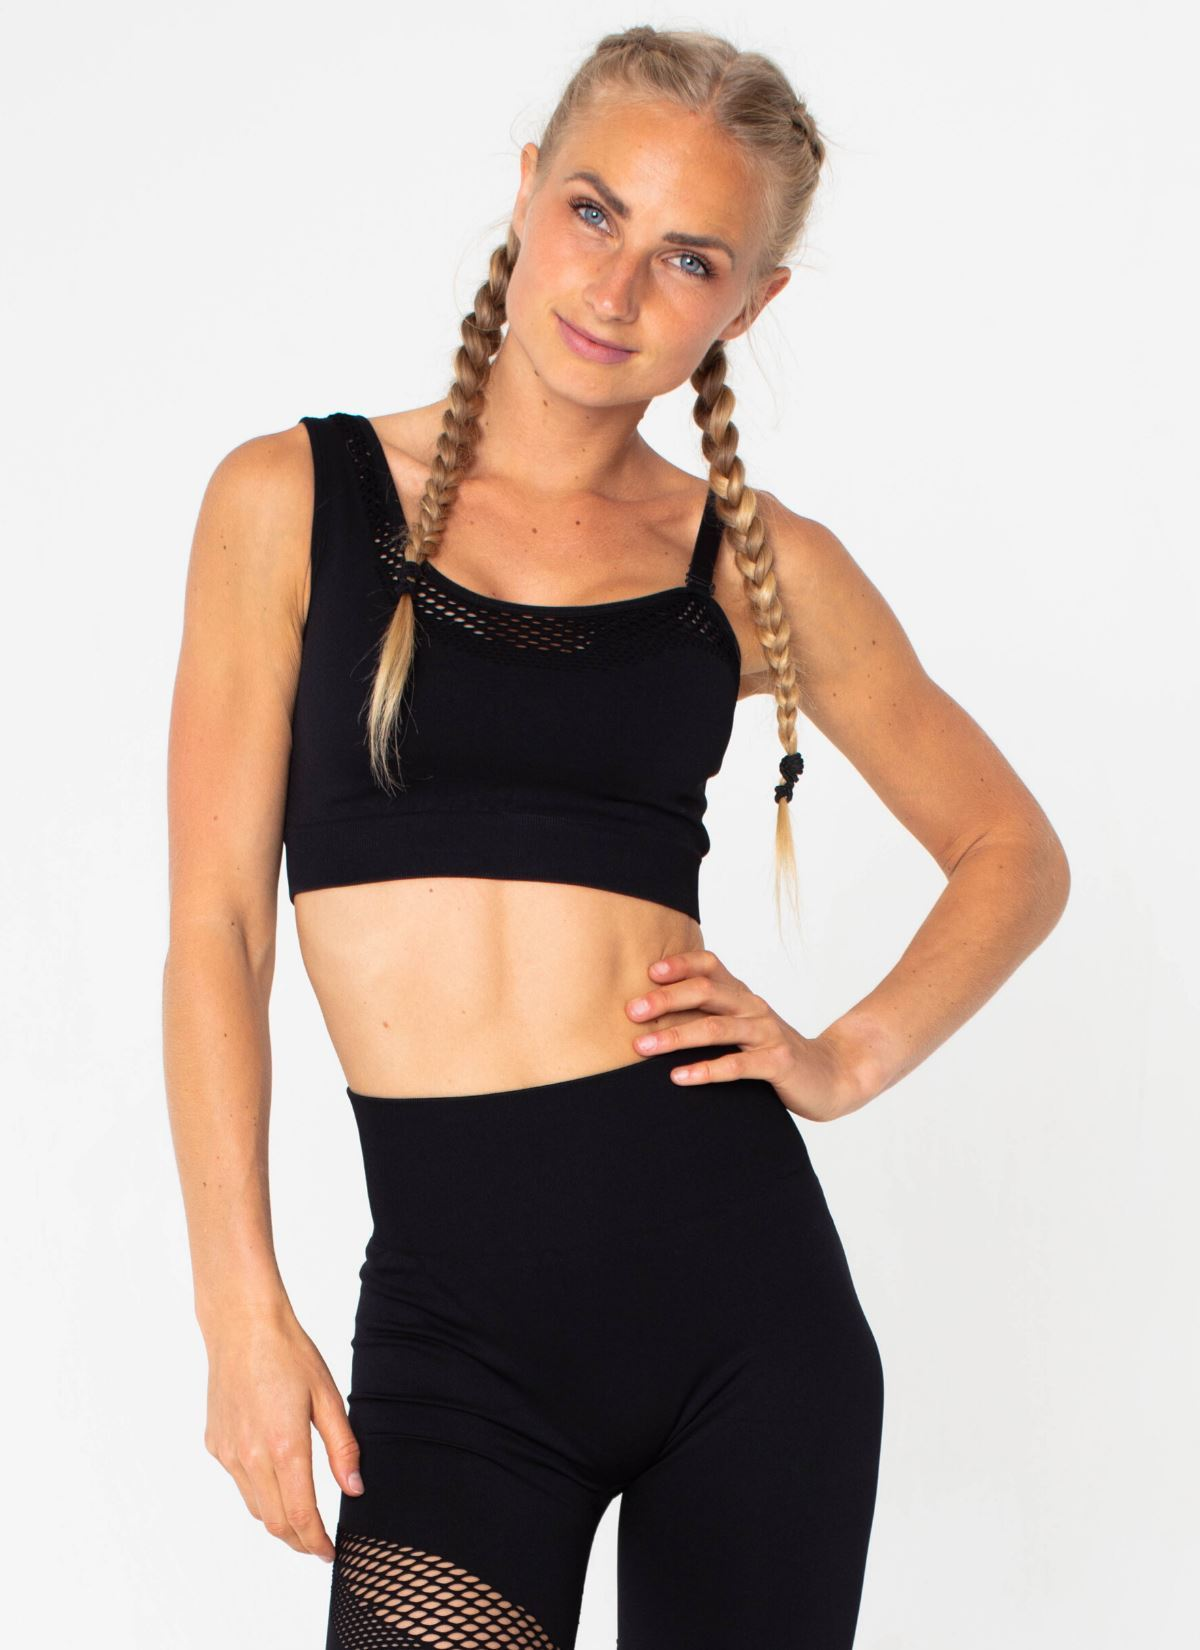 Finish Line Seamless Black Sports Bra - Athlete Body